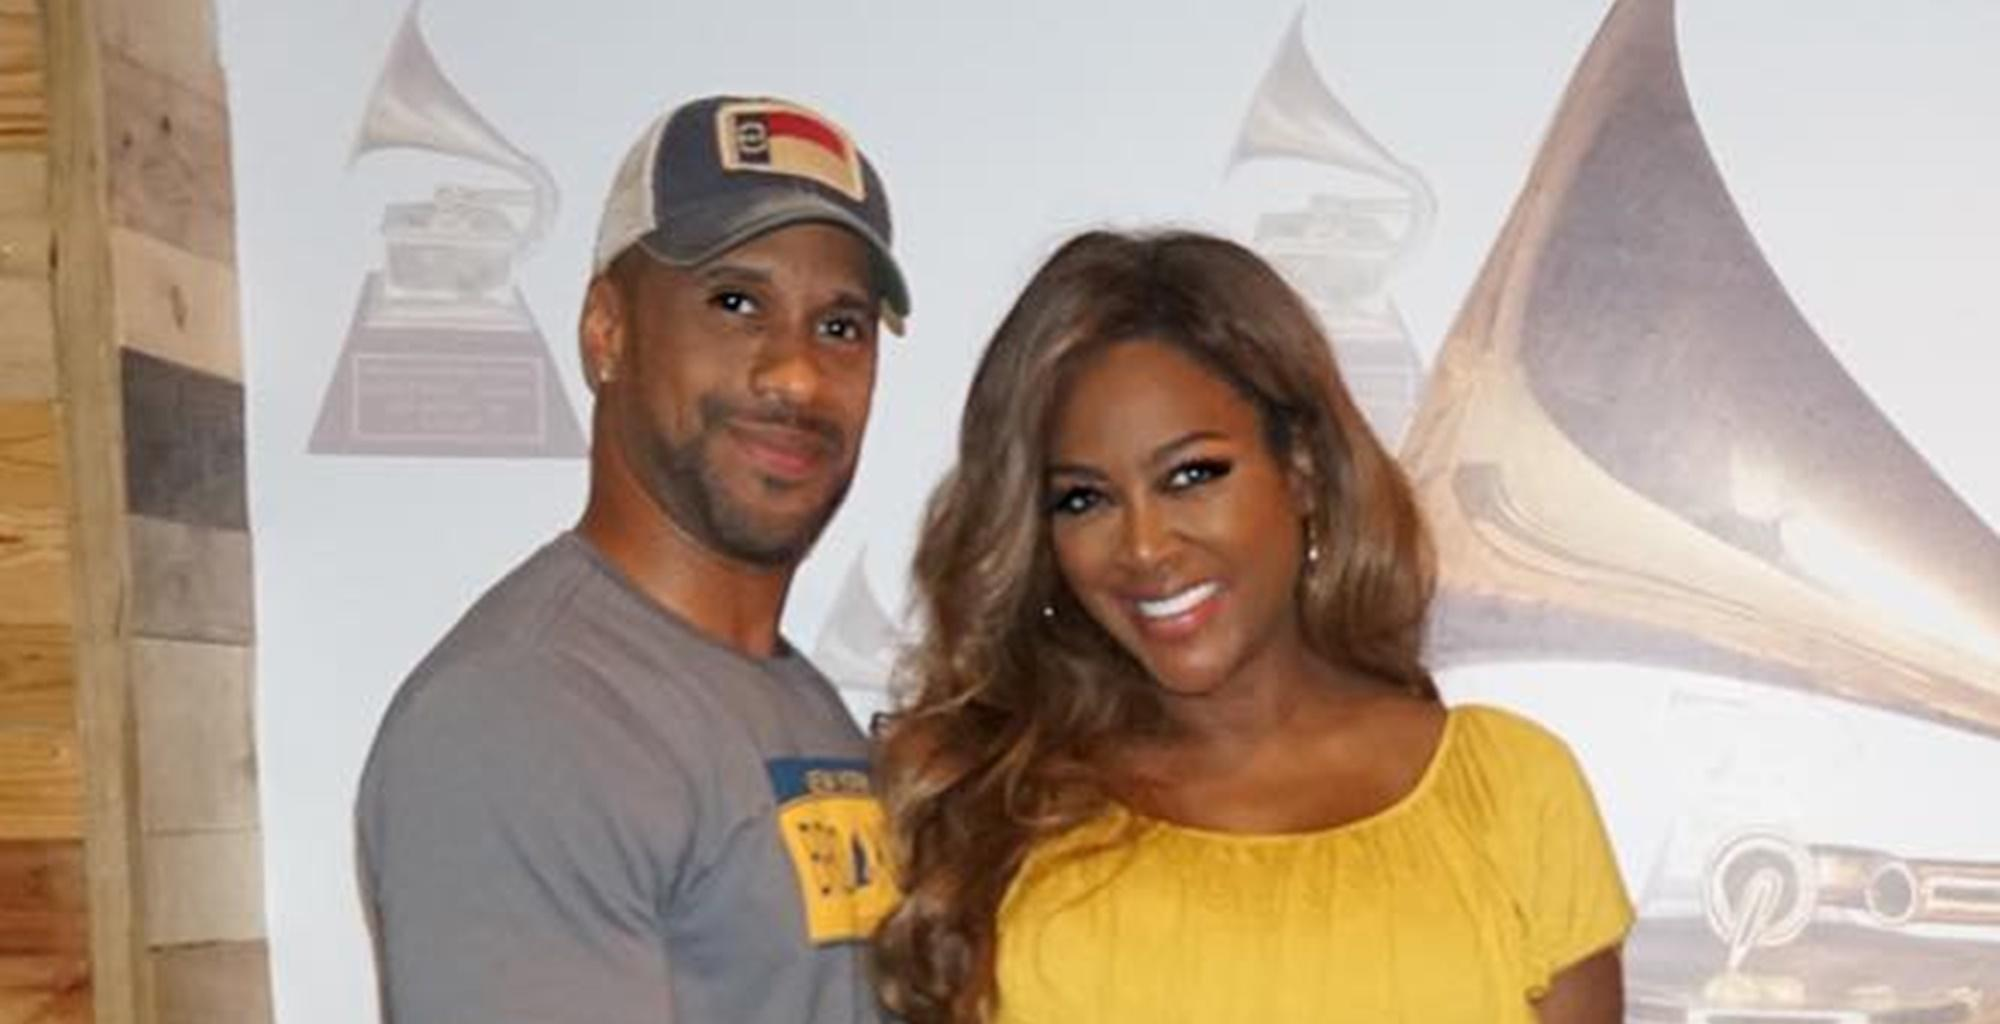 Kenya Moore Shares A Photo With Baby Brookie And Marc Daly - Fans Are Reassured That Everything Is Fine Between Them